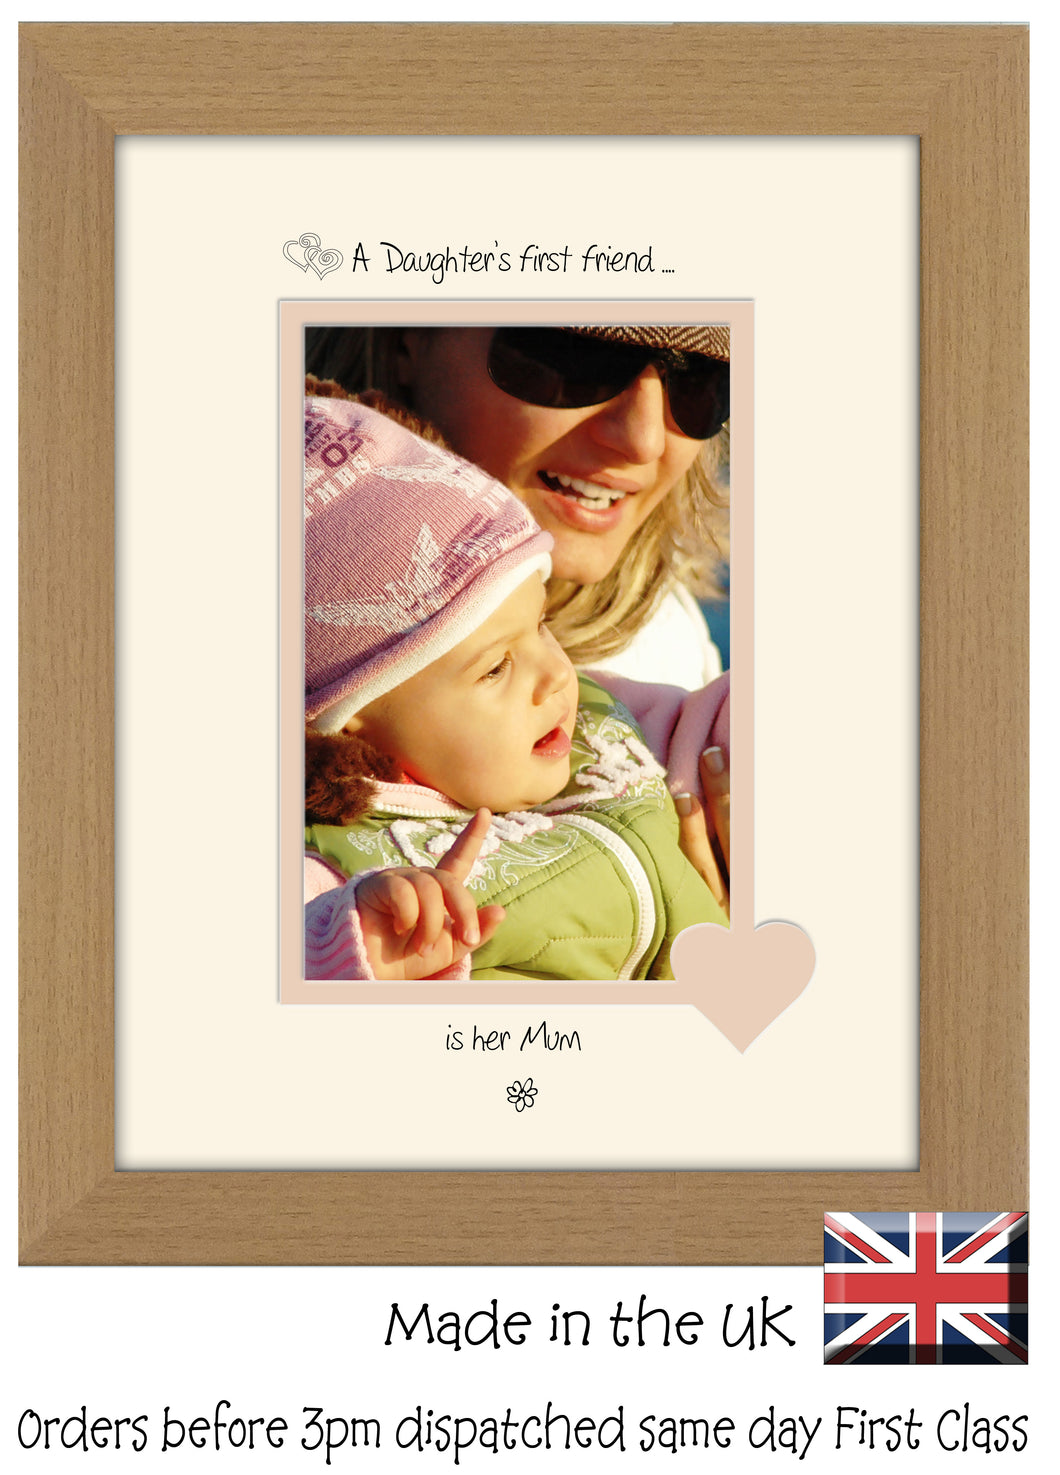 Mum Photo Frame - A Daughters first friend…  is her Mum Portrait photo frame 6